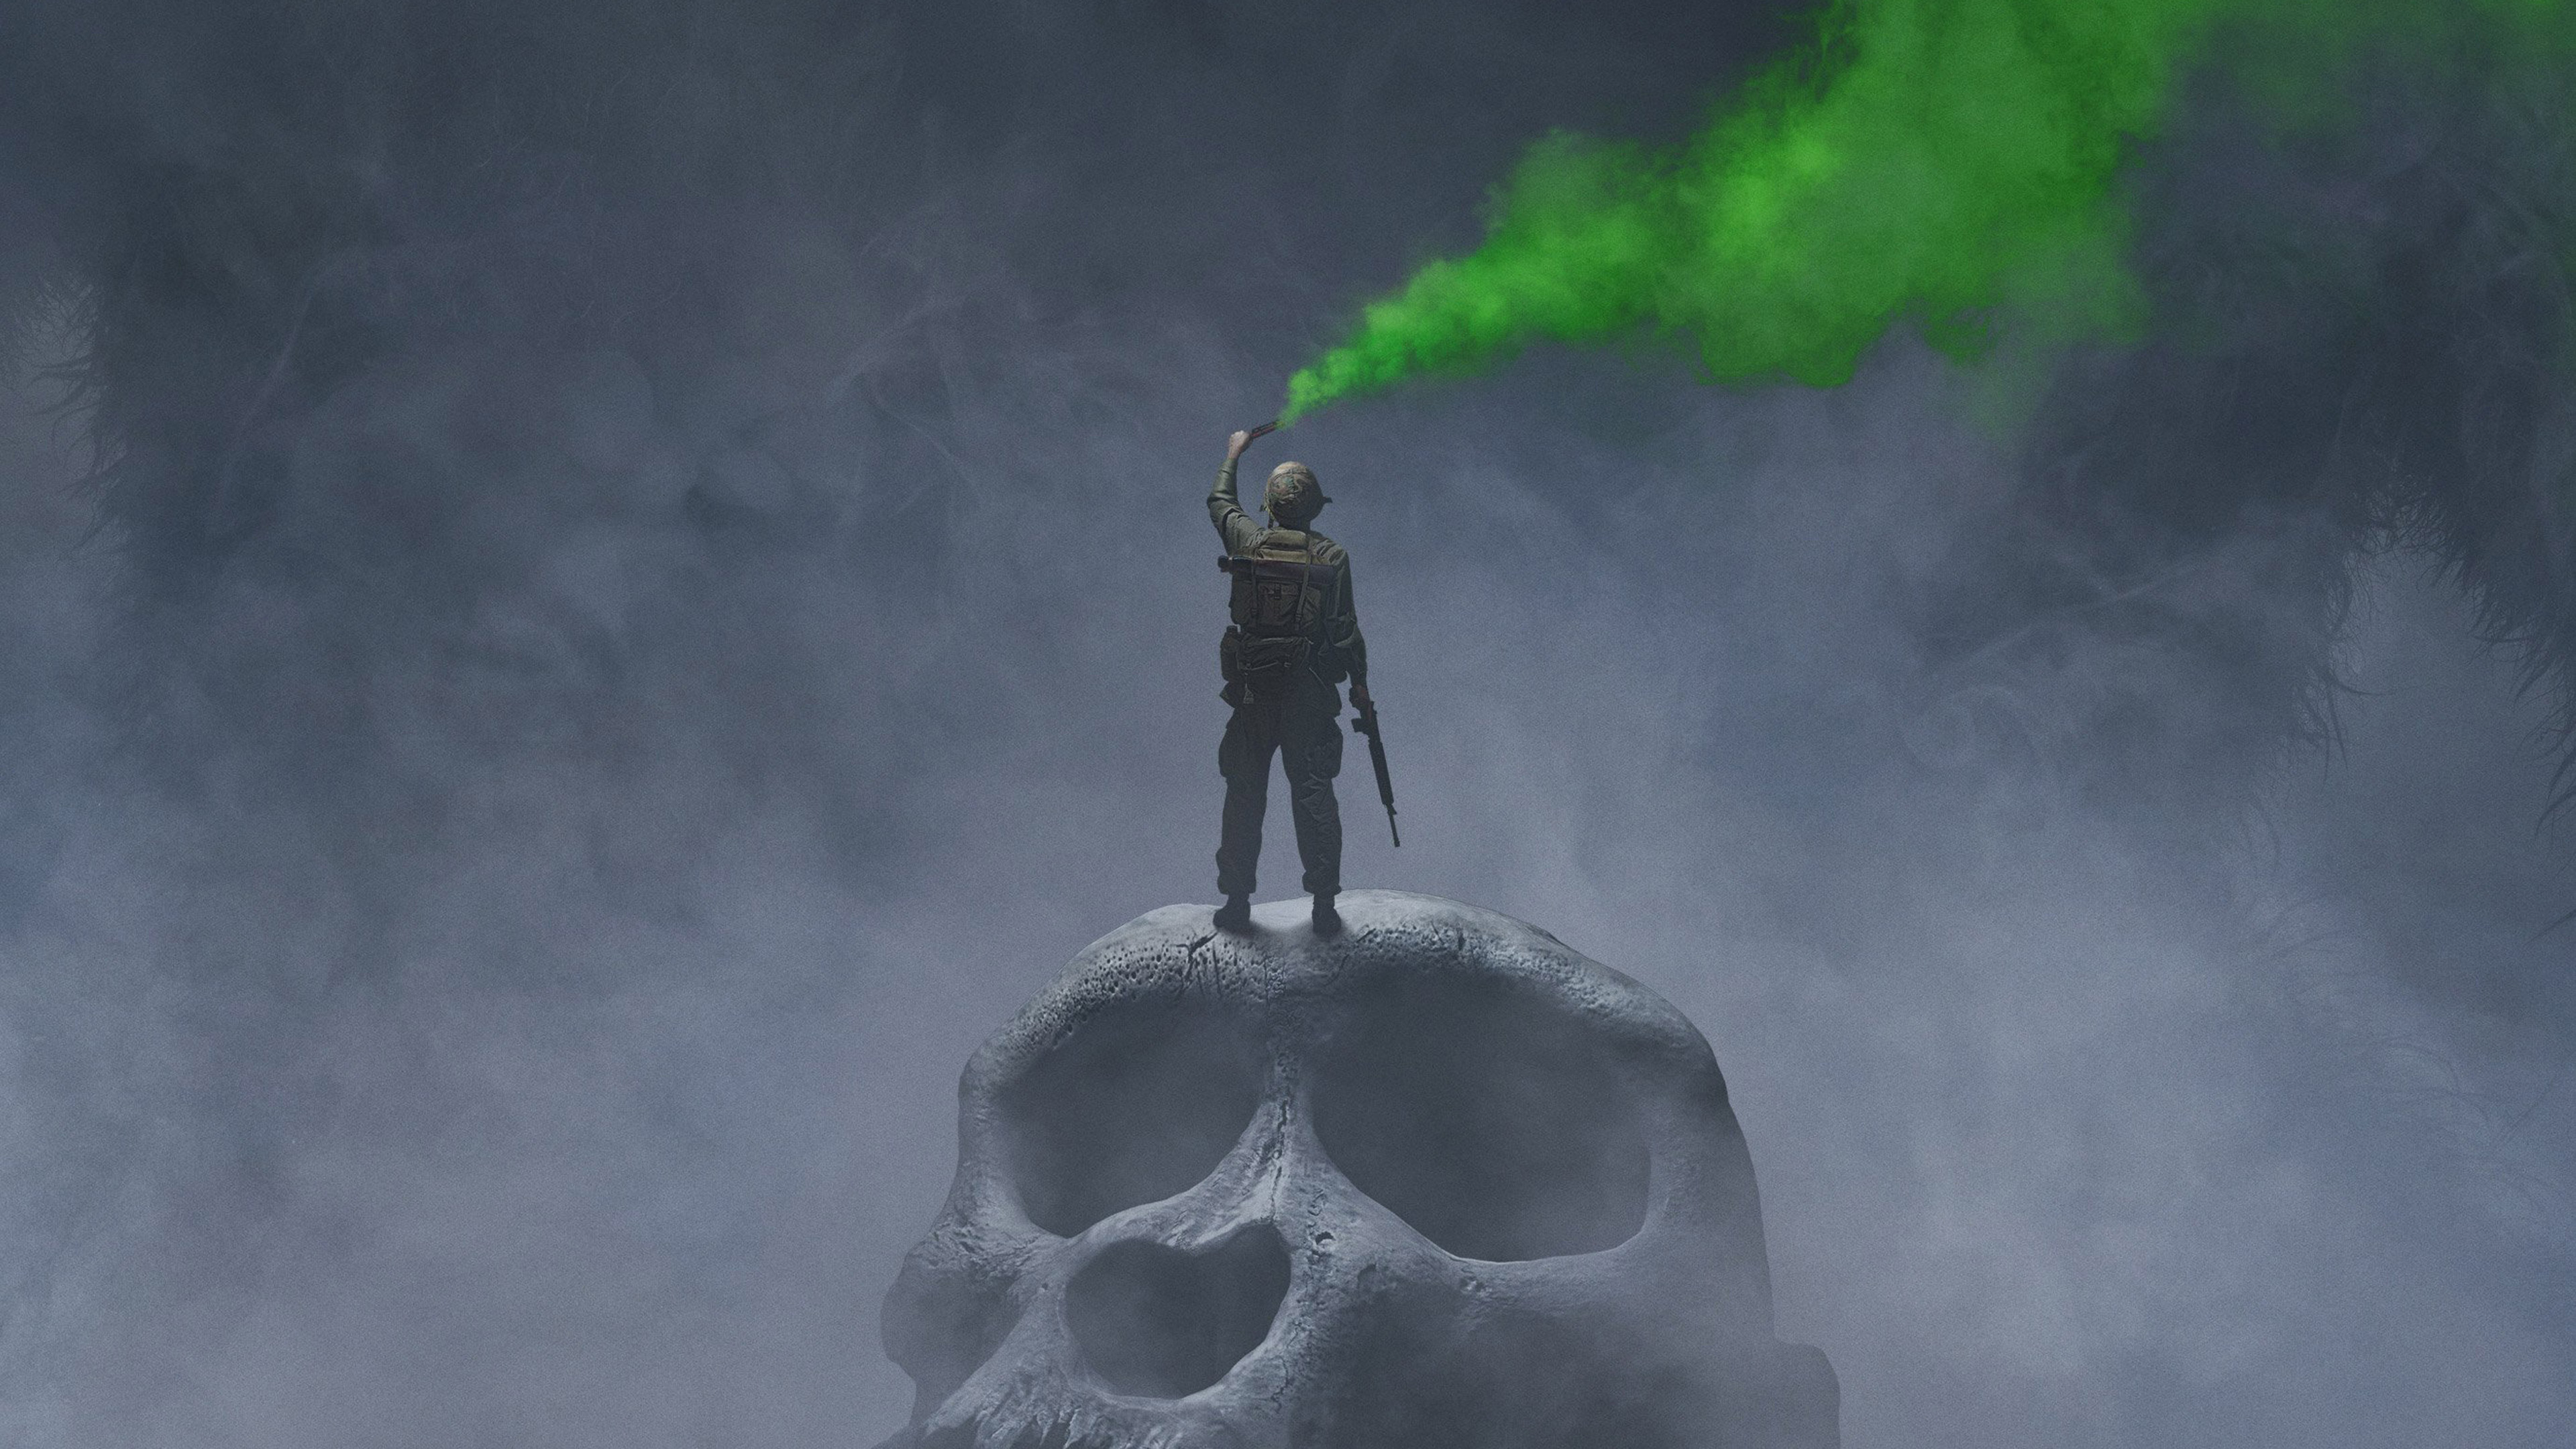 kong skull island 2017 1536399075 - Kong Skull Island 2017 - kong skull island wallpapers, 2017 movies wallpapers